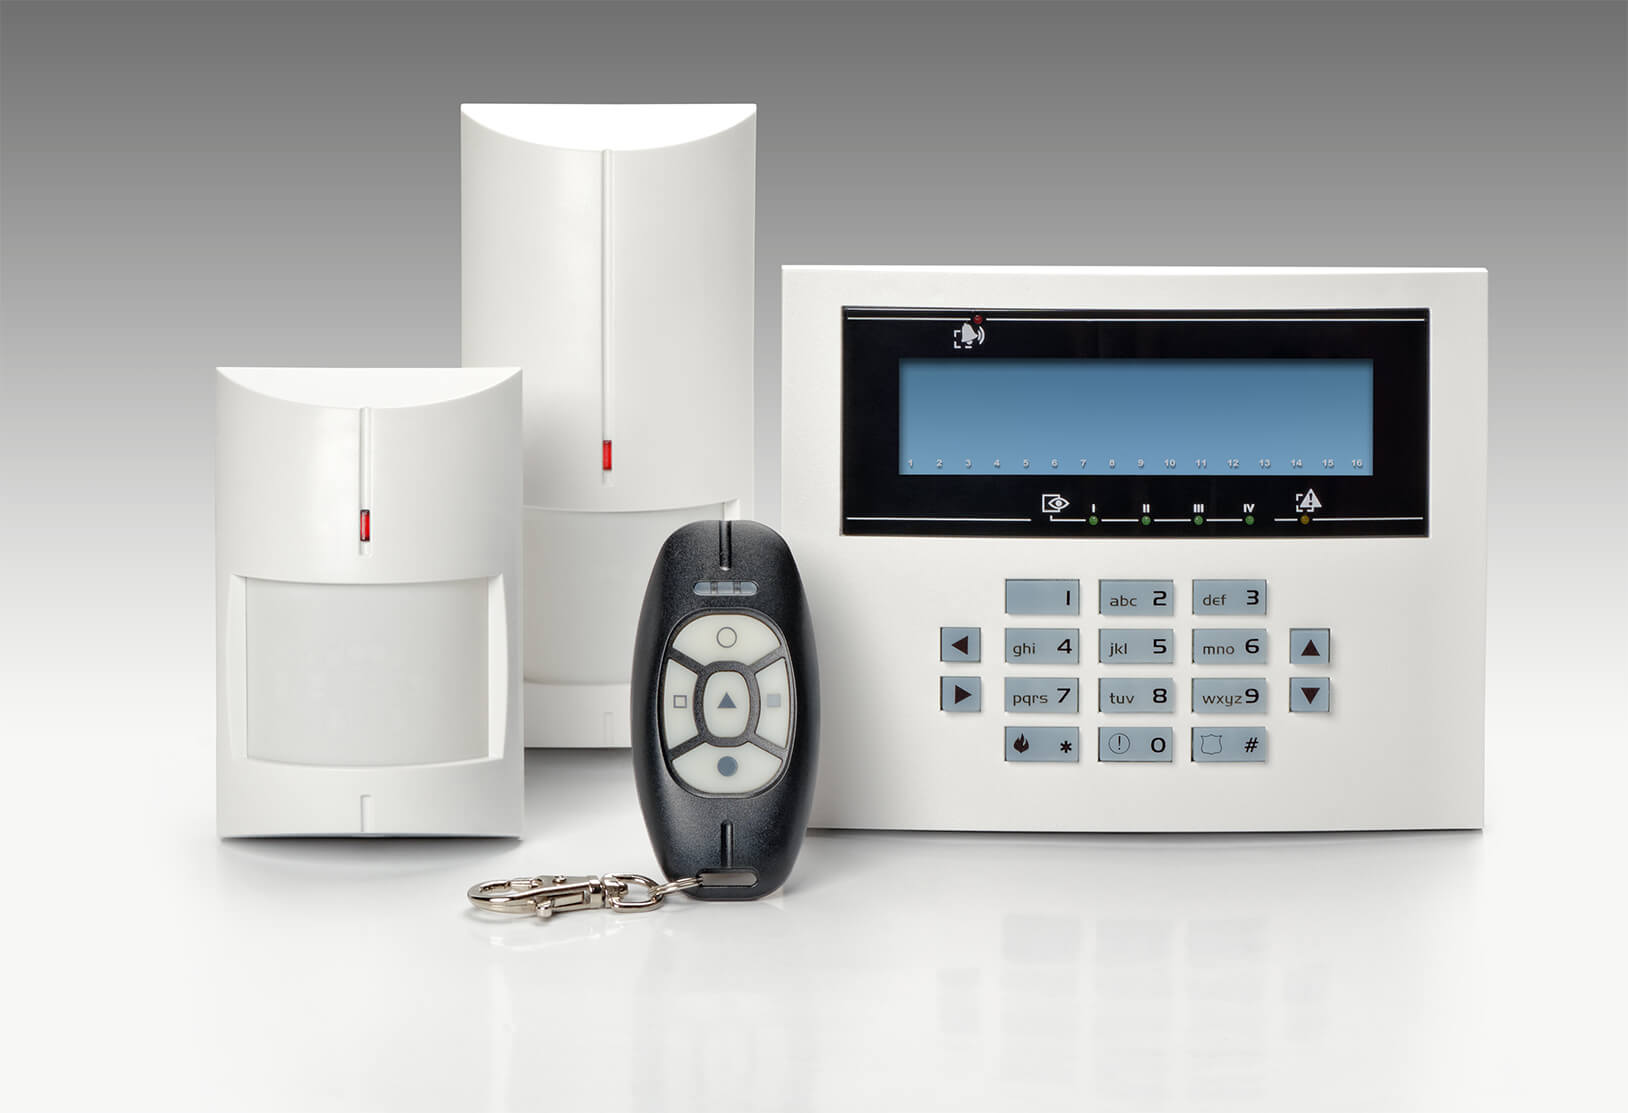 Business & Residential NSI / NACOSS Approved Burglar Alarms In Stockwell SW9 - Local Stockwell SW9 security company.Call 02078872244 - Dedicated to Safety & Security. Companies, shops and homes ..